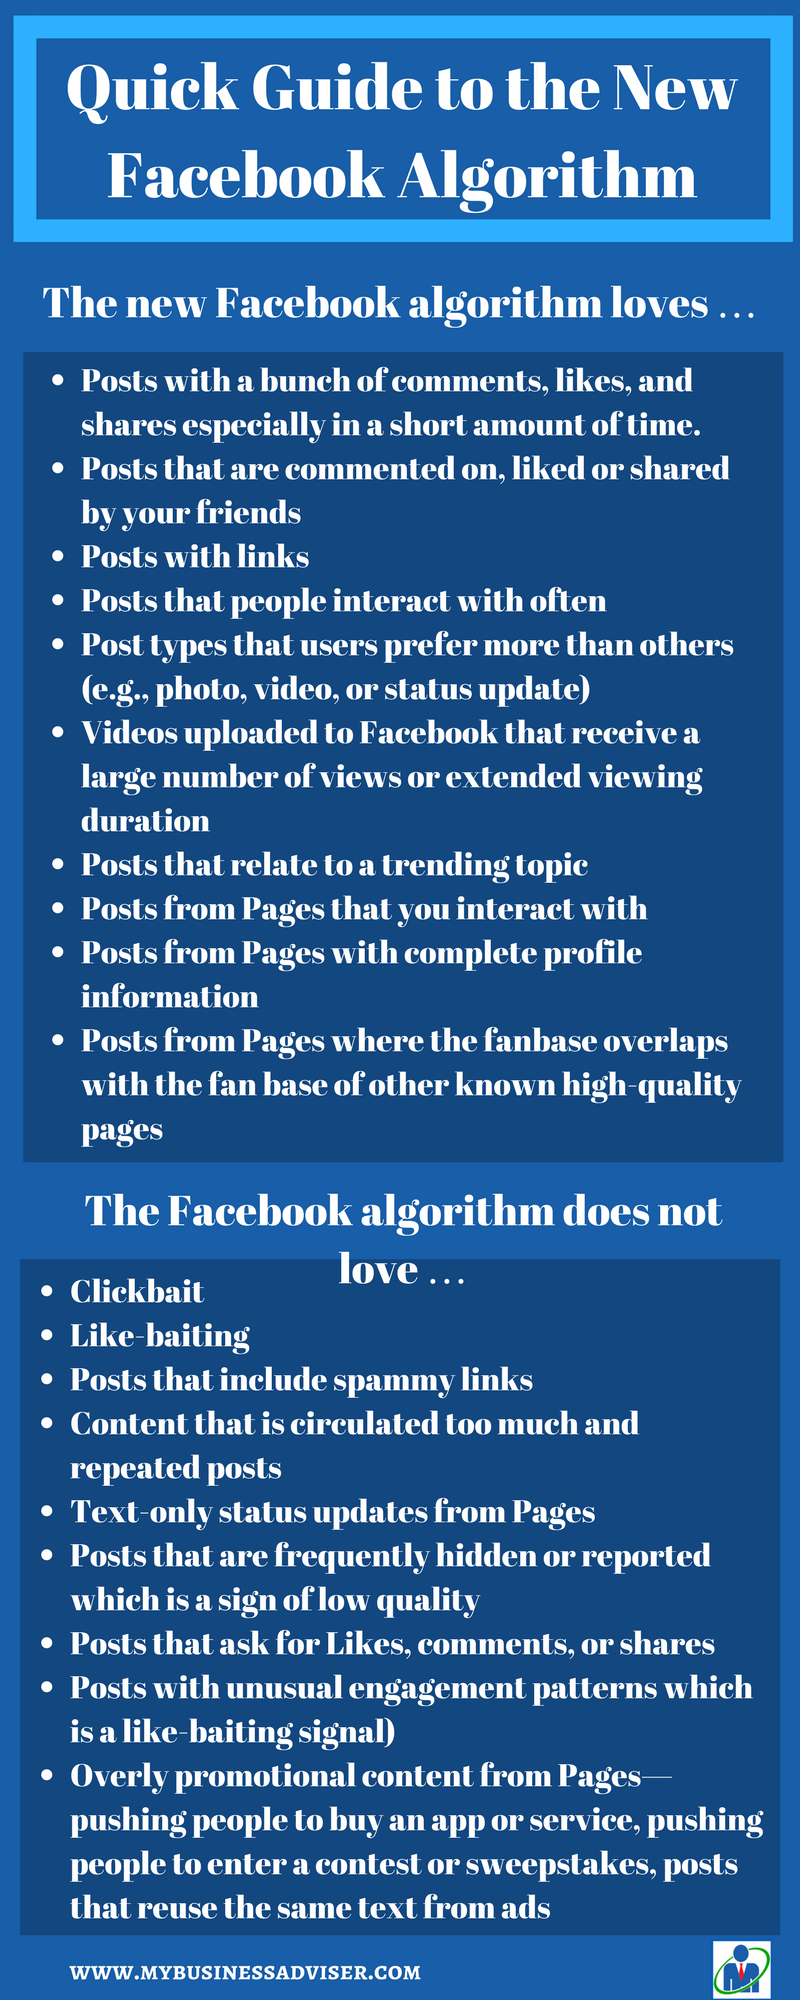 Quick Guide to Facebook Algorithm